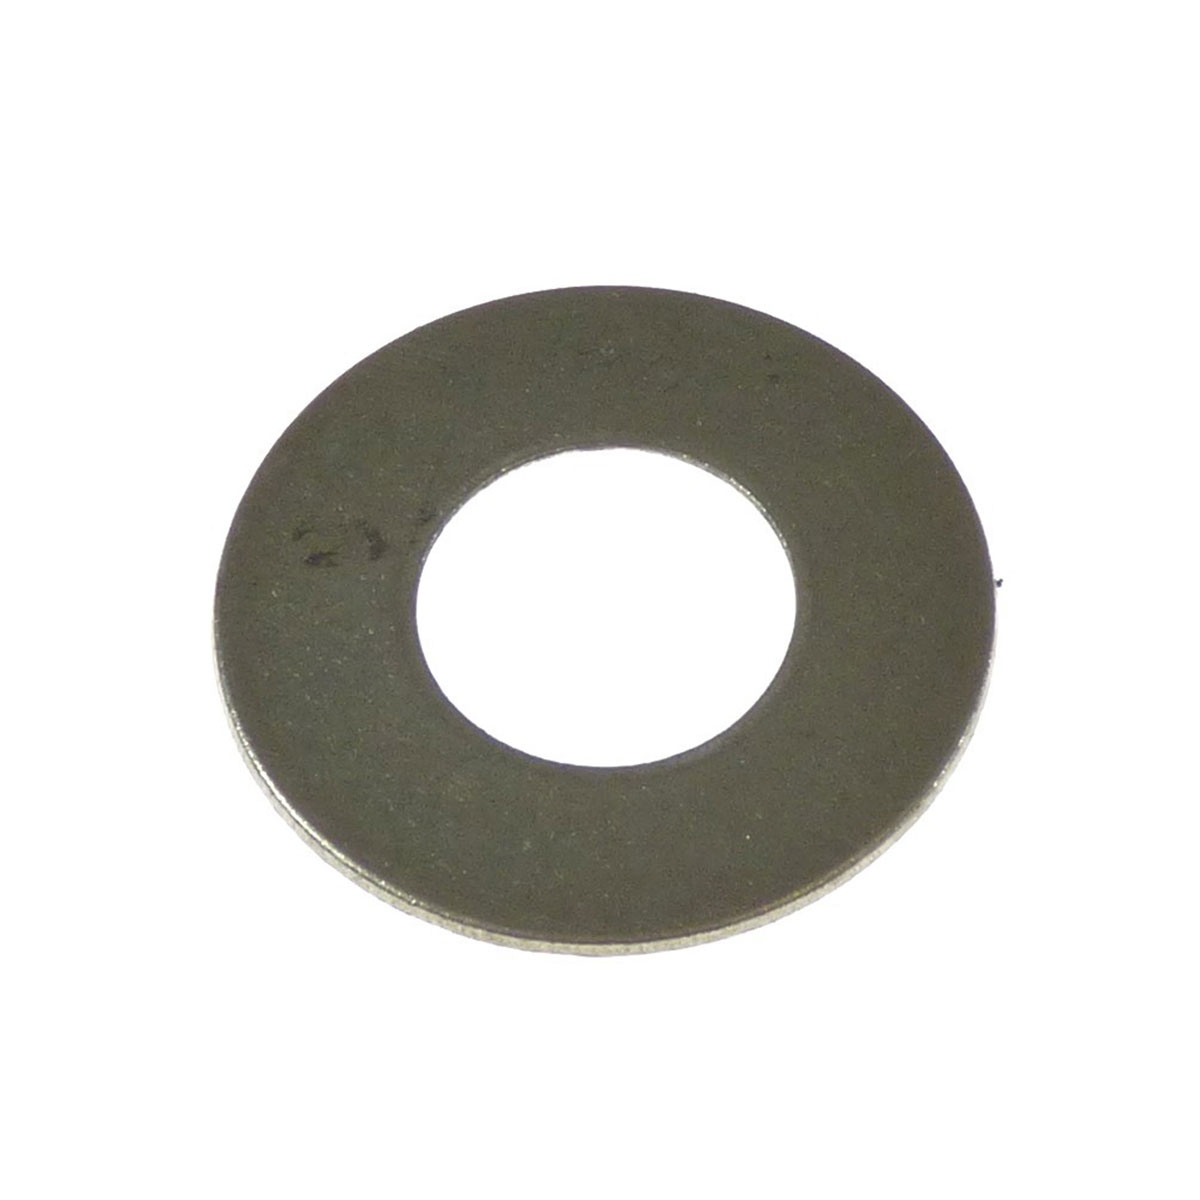 Torqeedo Washer nut side